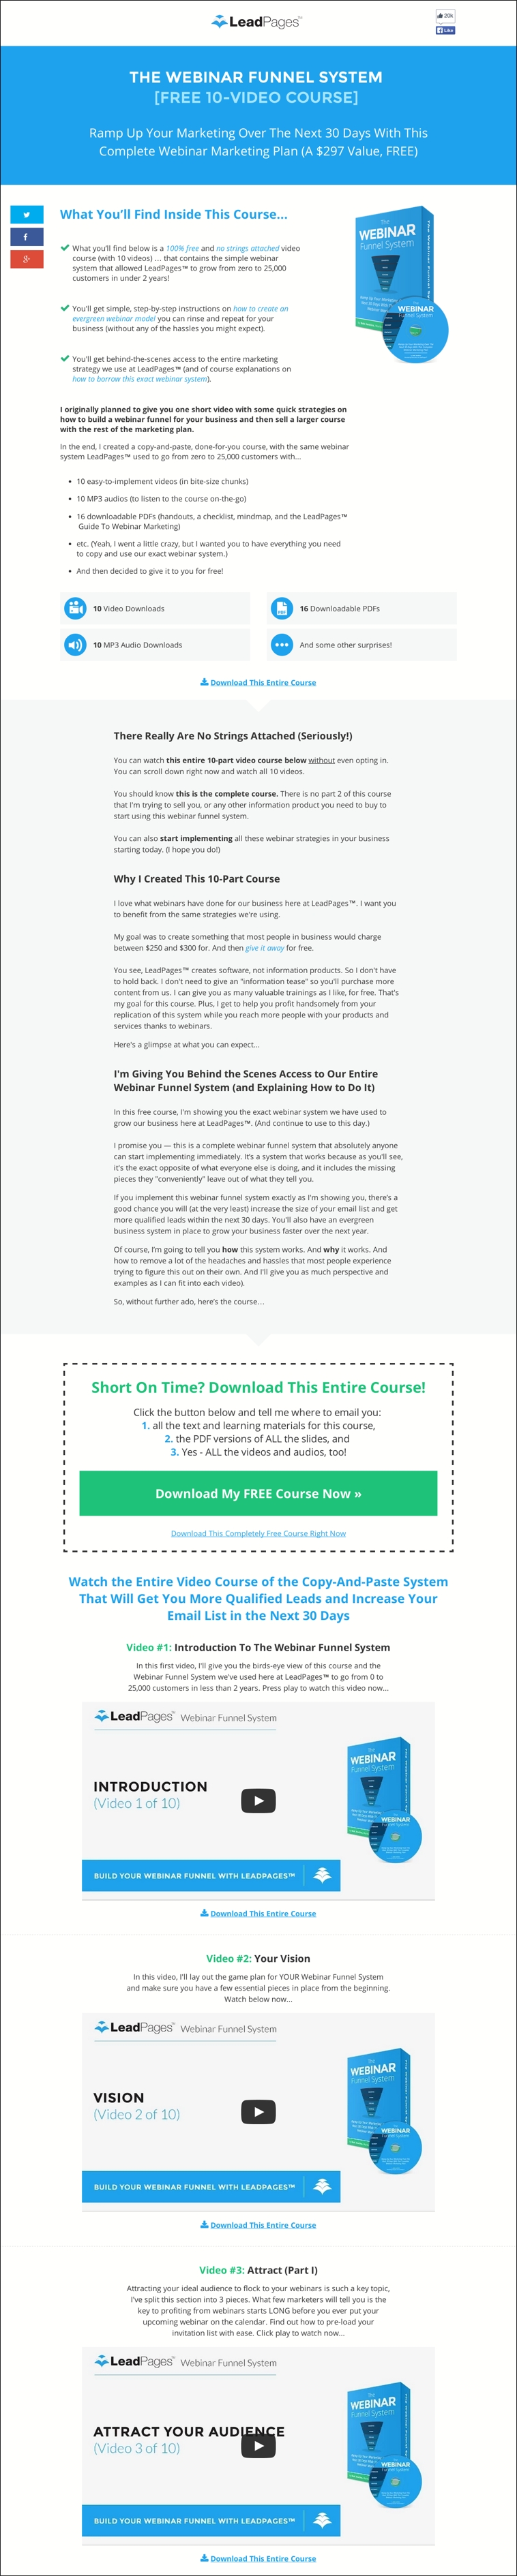 The Webinar Funnel System Landing Page